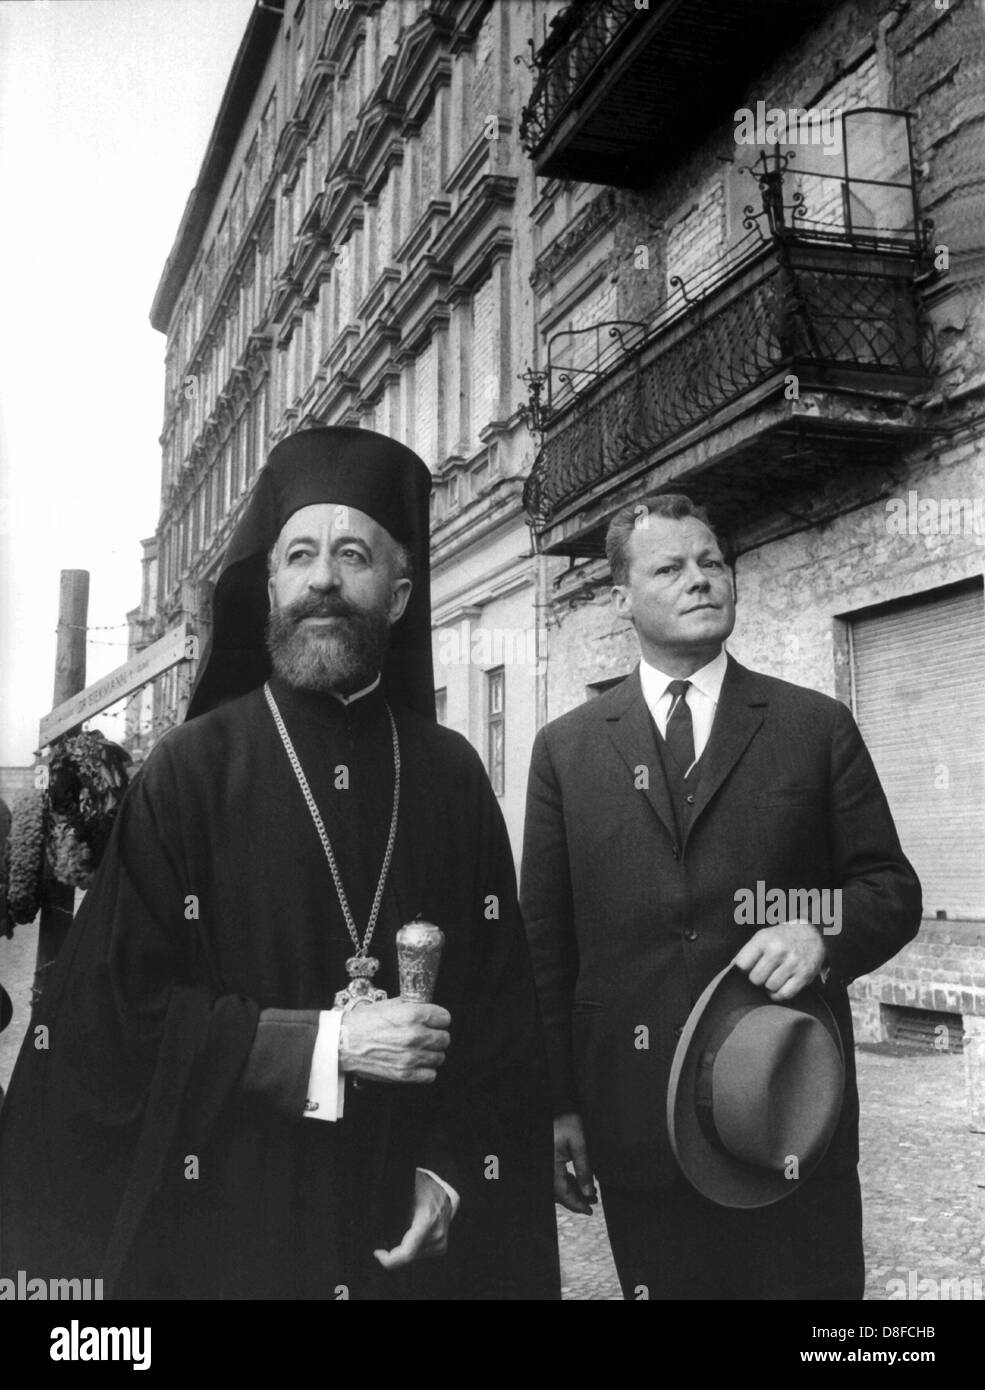 Cypriot Archbishop Makarios and Berlin's Lord Mayor Willy Brandt (R) visit the walled-in houses standing directly - Stock Image